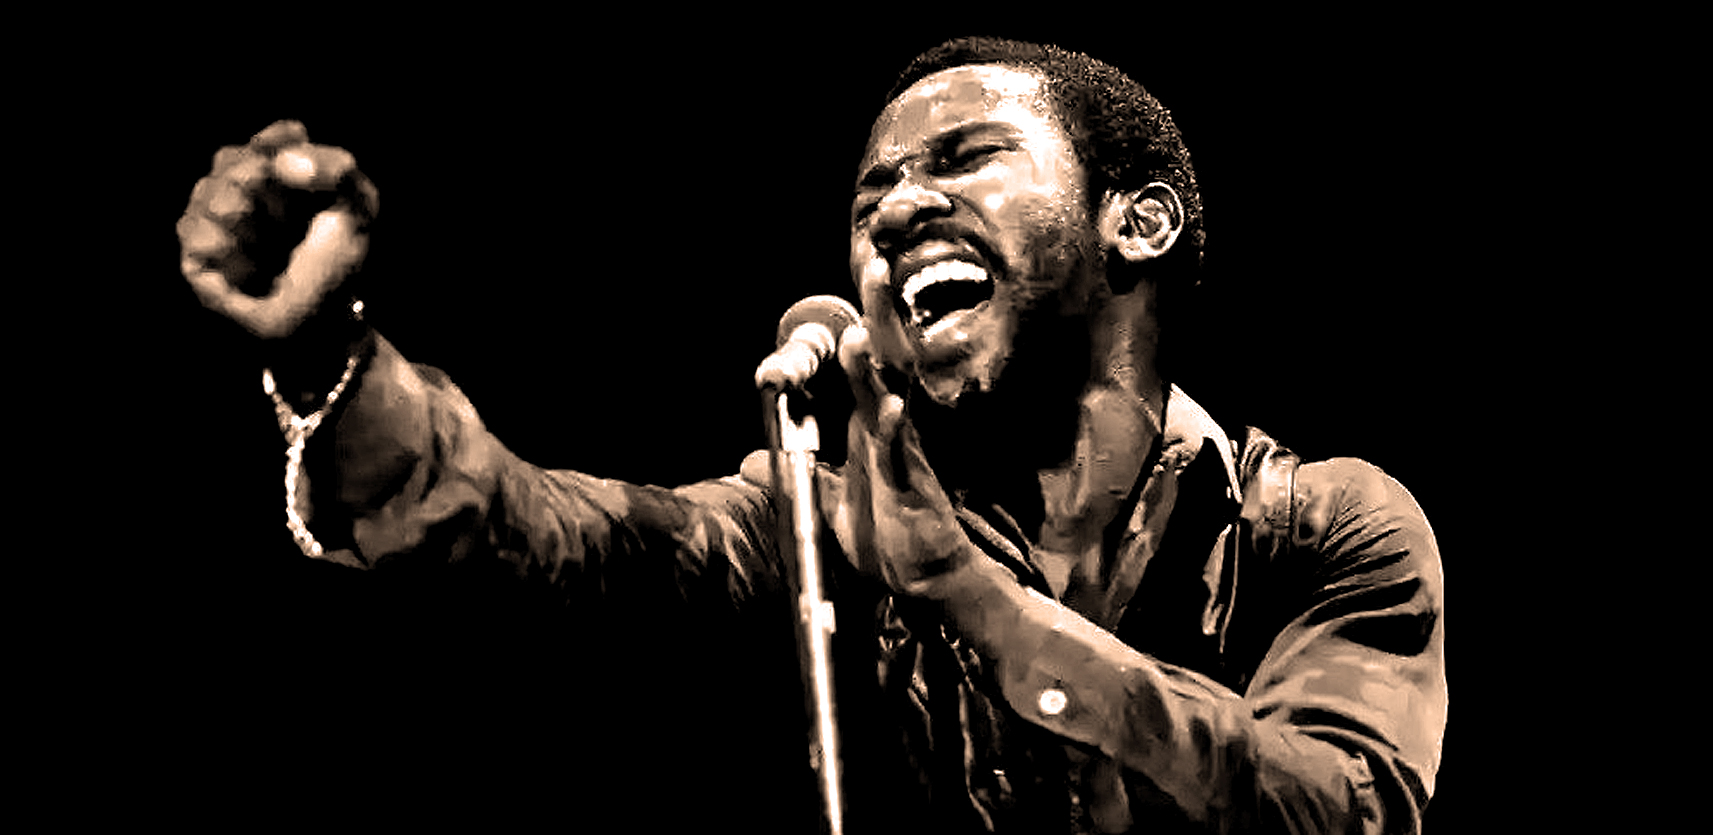 Toots And The Maytals – Live In Santa Cruz – 1978 – Past Daily Backstage Pass – Tribute Edition (Toots Hibbert – 1942-2020)